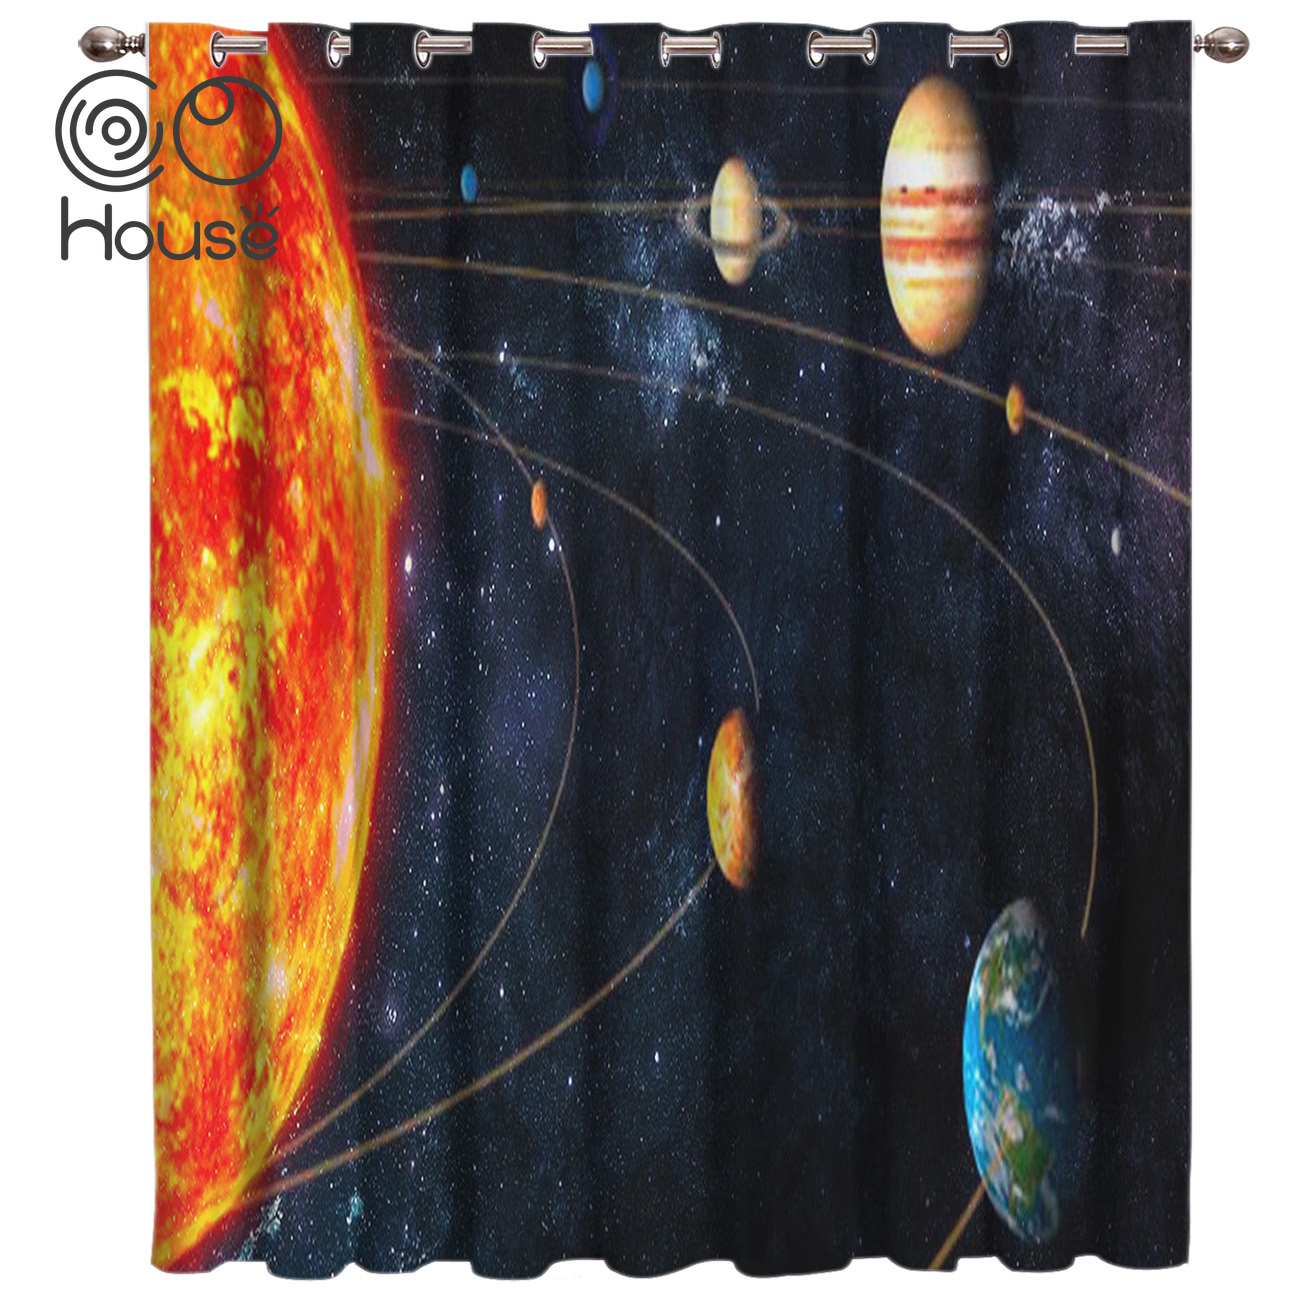 CoCoHouse Solar System Window Treatments Curtains Valance Curtain Lights Living Room Bathroom Outdoor Indoor Fabric Swag Window